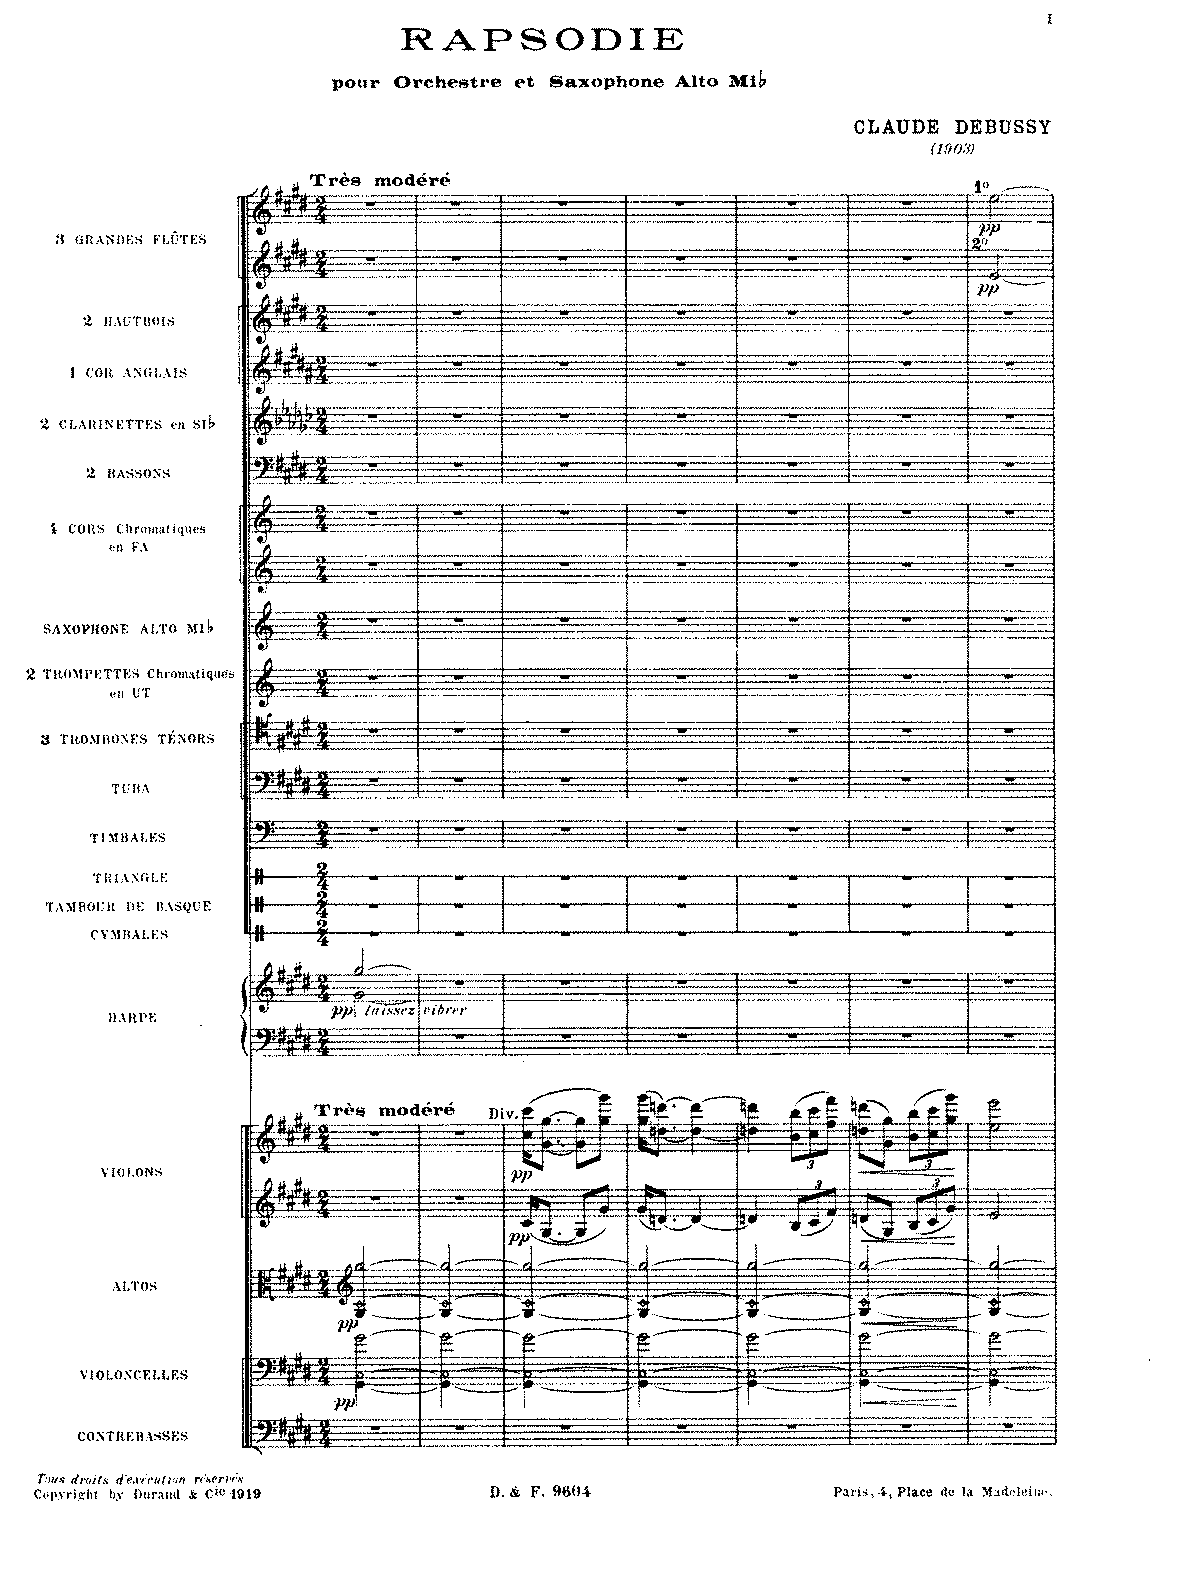 Debussy - Rapsodie for Orchestra and Saxophone (orch. score).pdf